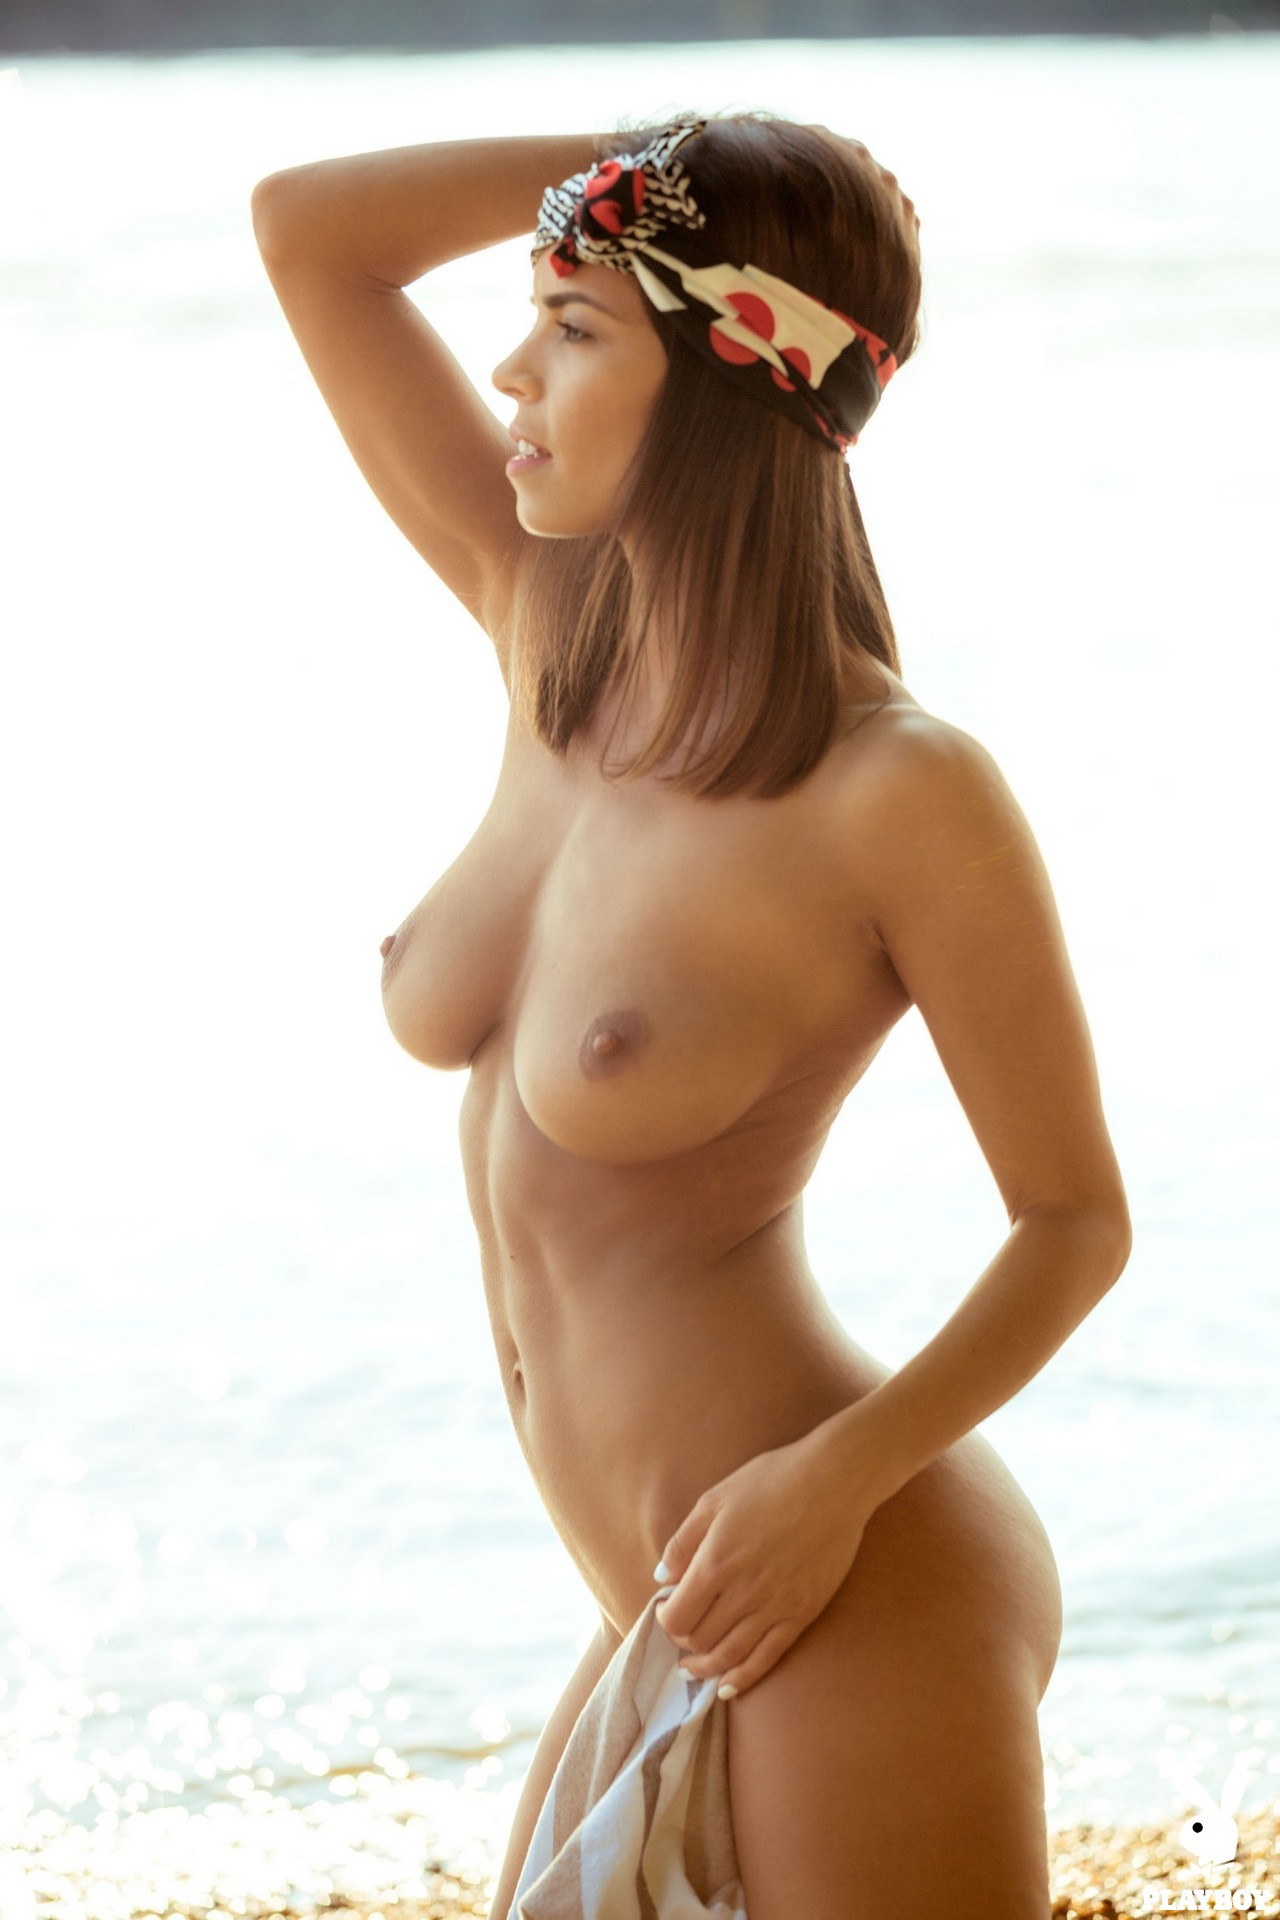 Natalie Costello in Soothing Lake - Playboy Plus 15